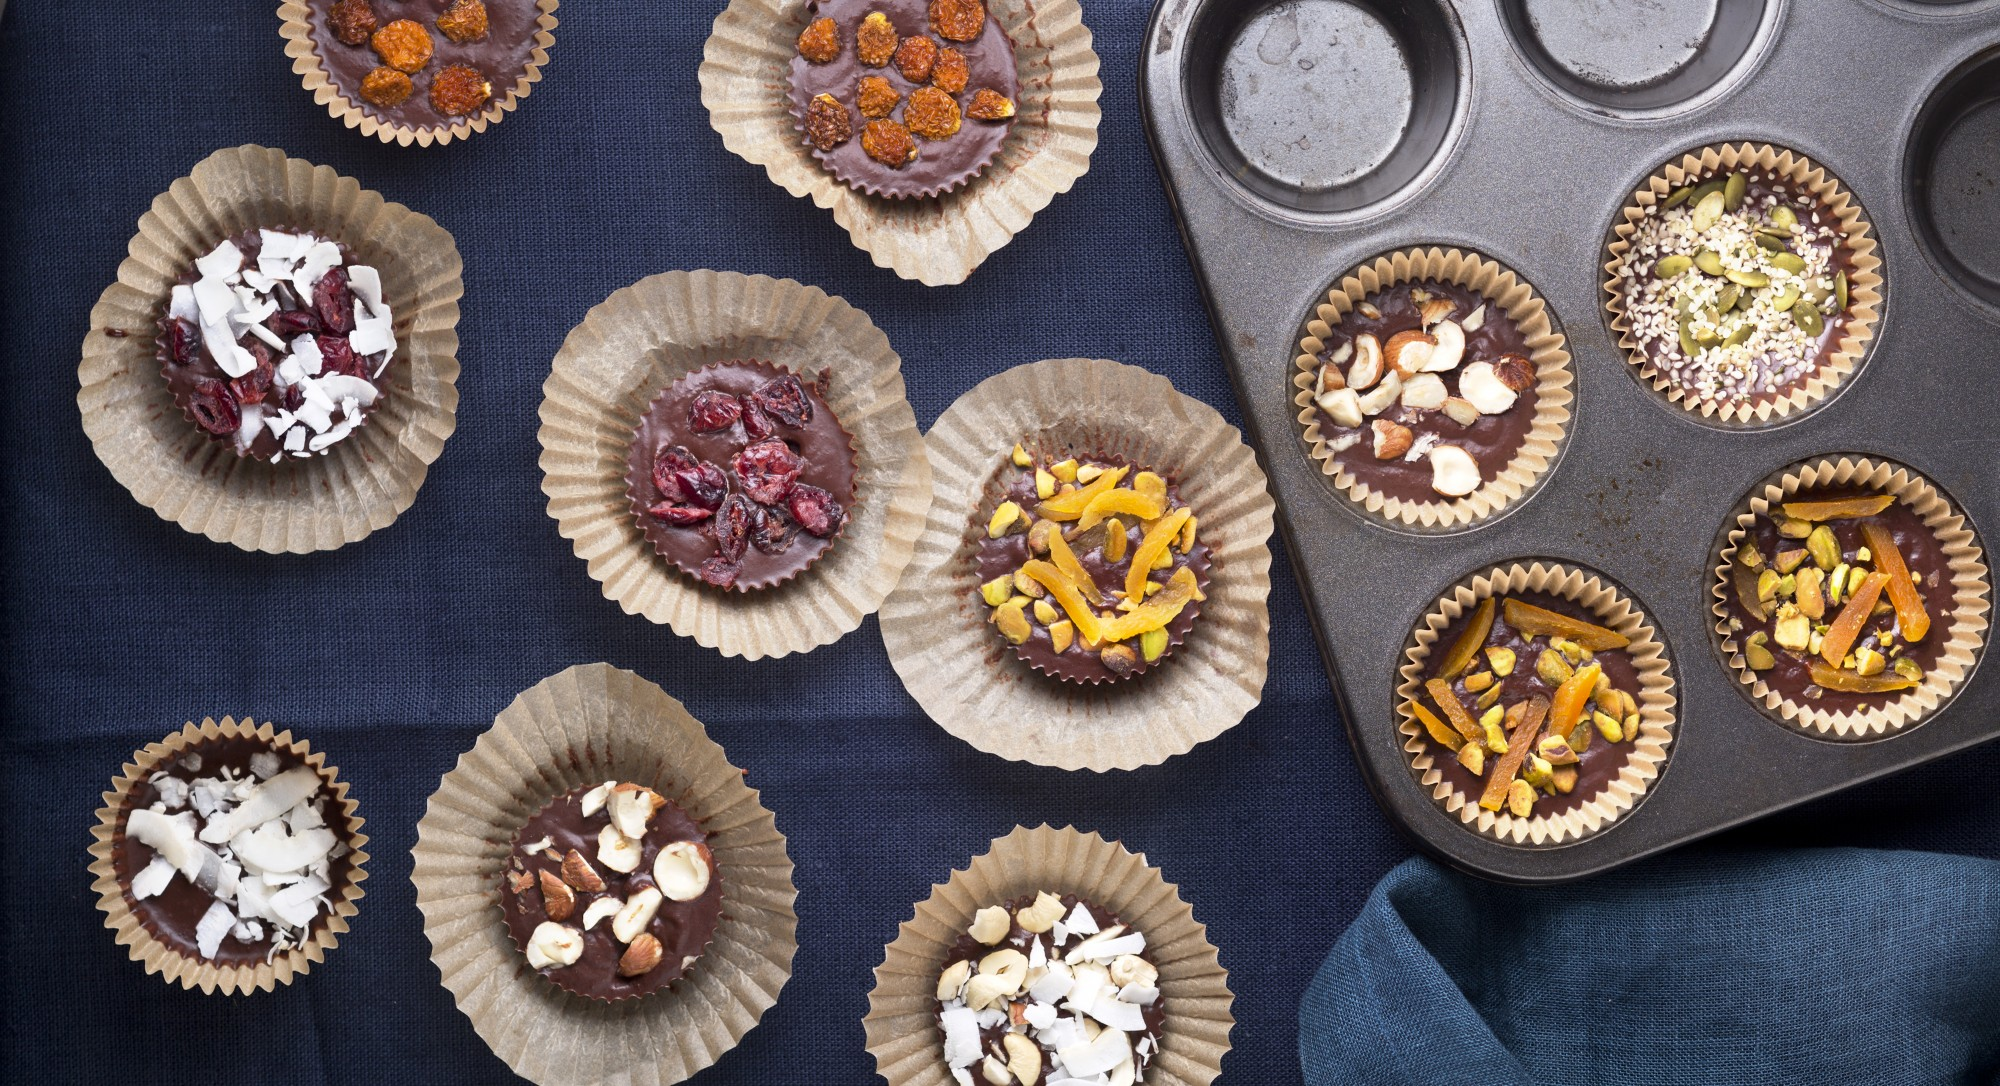 8 Homemade Sweets That Make Awesome Holiday Gifts